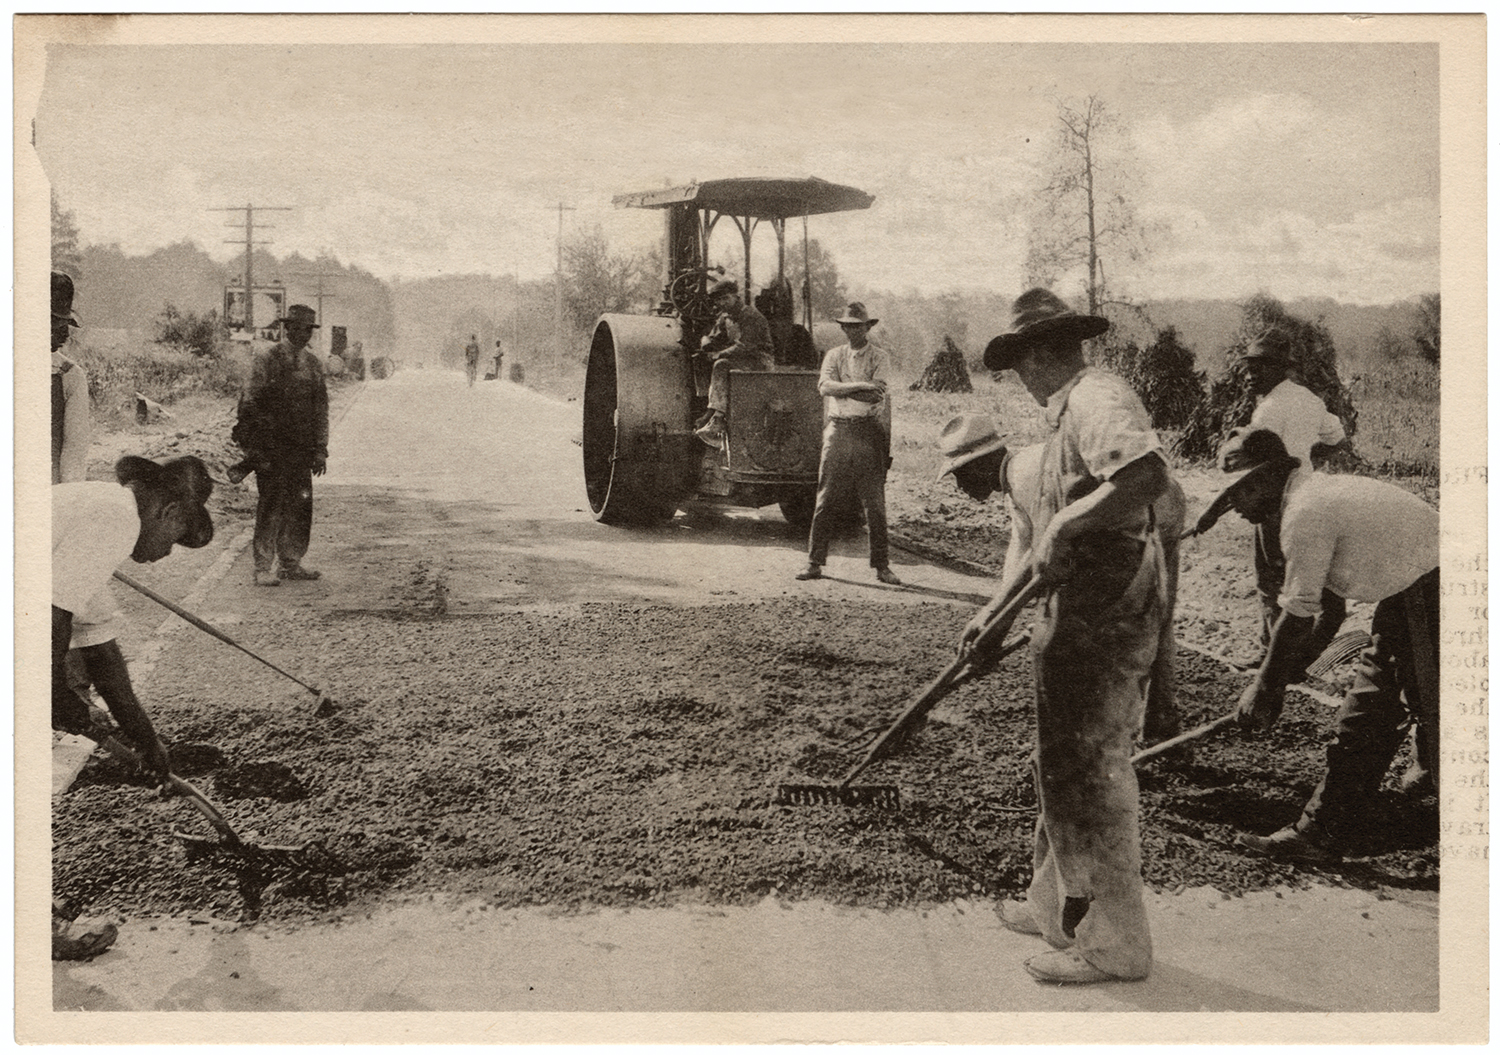 """By the time workers with Robert G. Lassiter and Co. completed a federally funded highway from Durham to Roxboro in the fall of 1919, the News and Observer reported citizens had already """"motored out"""" to see the road."""